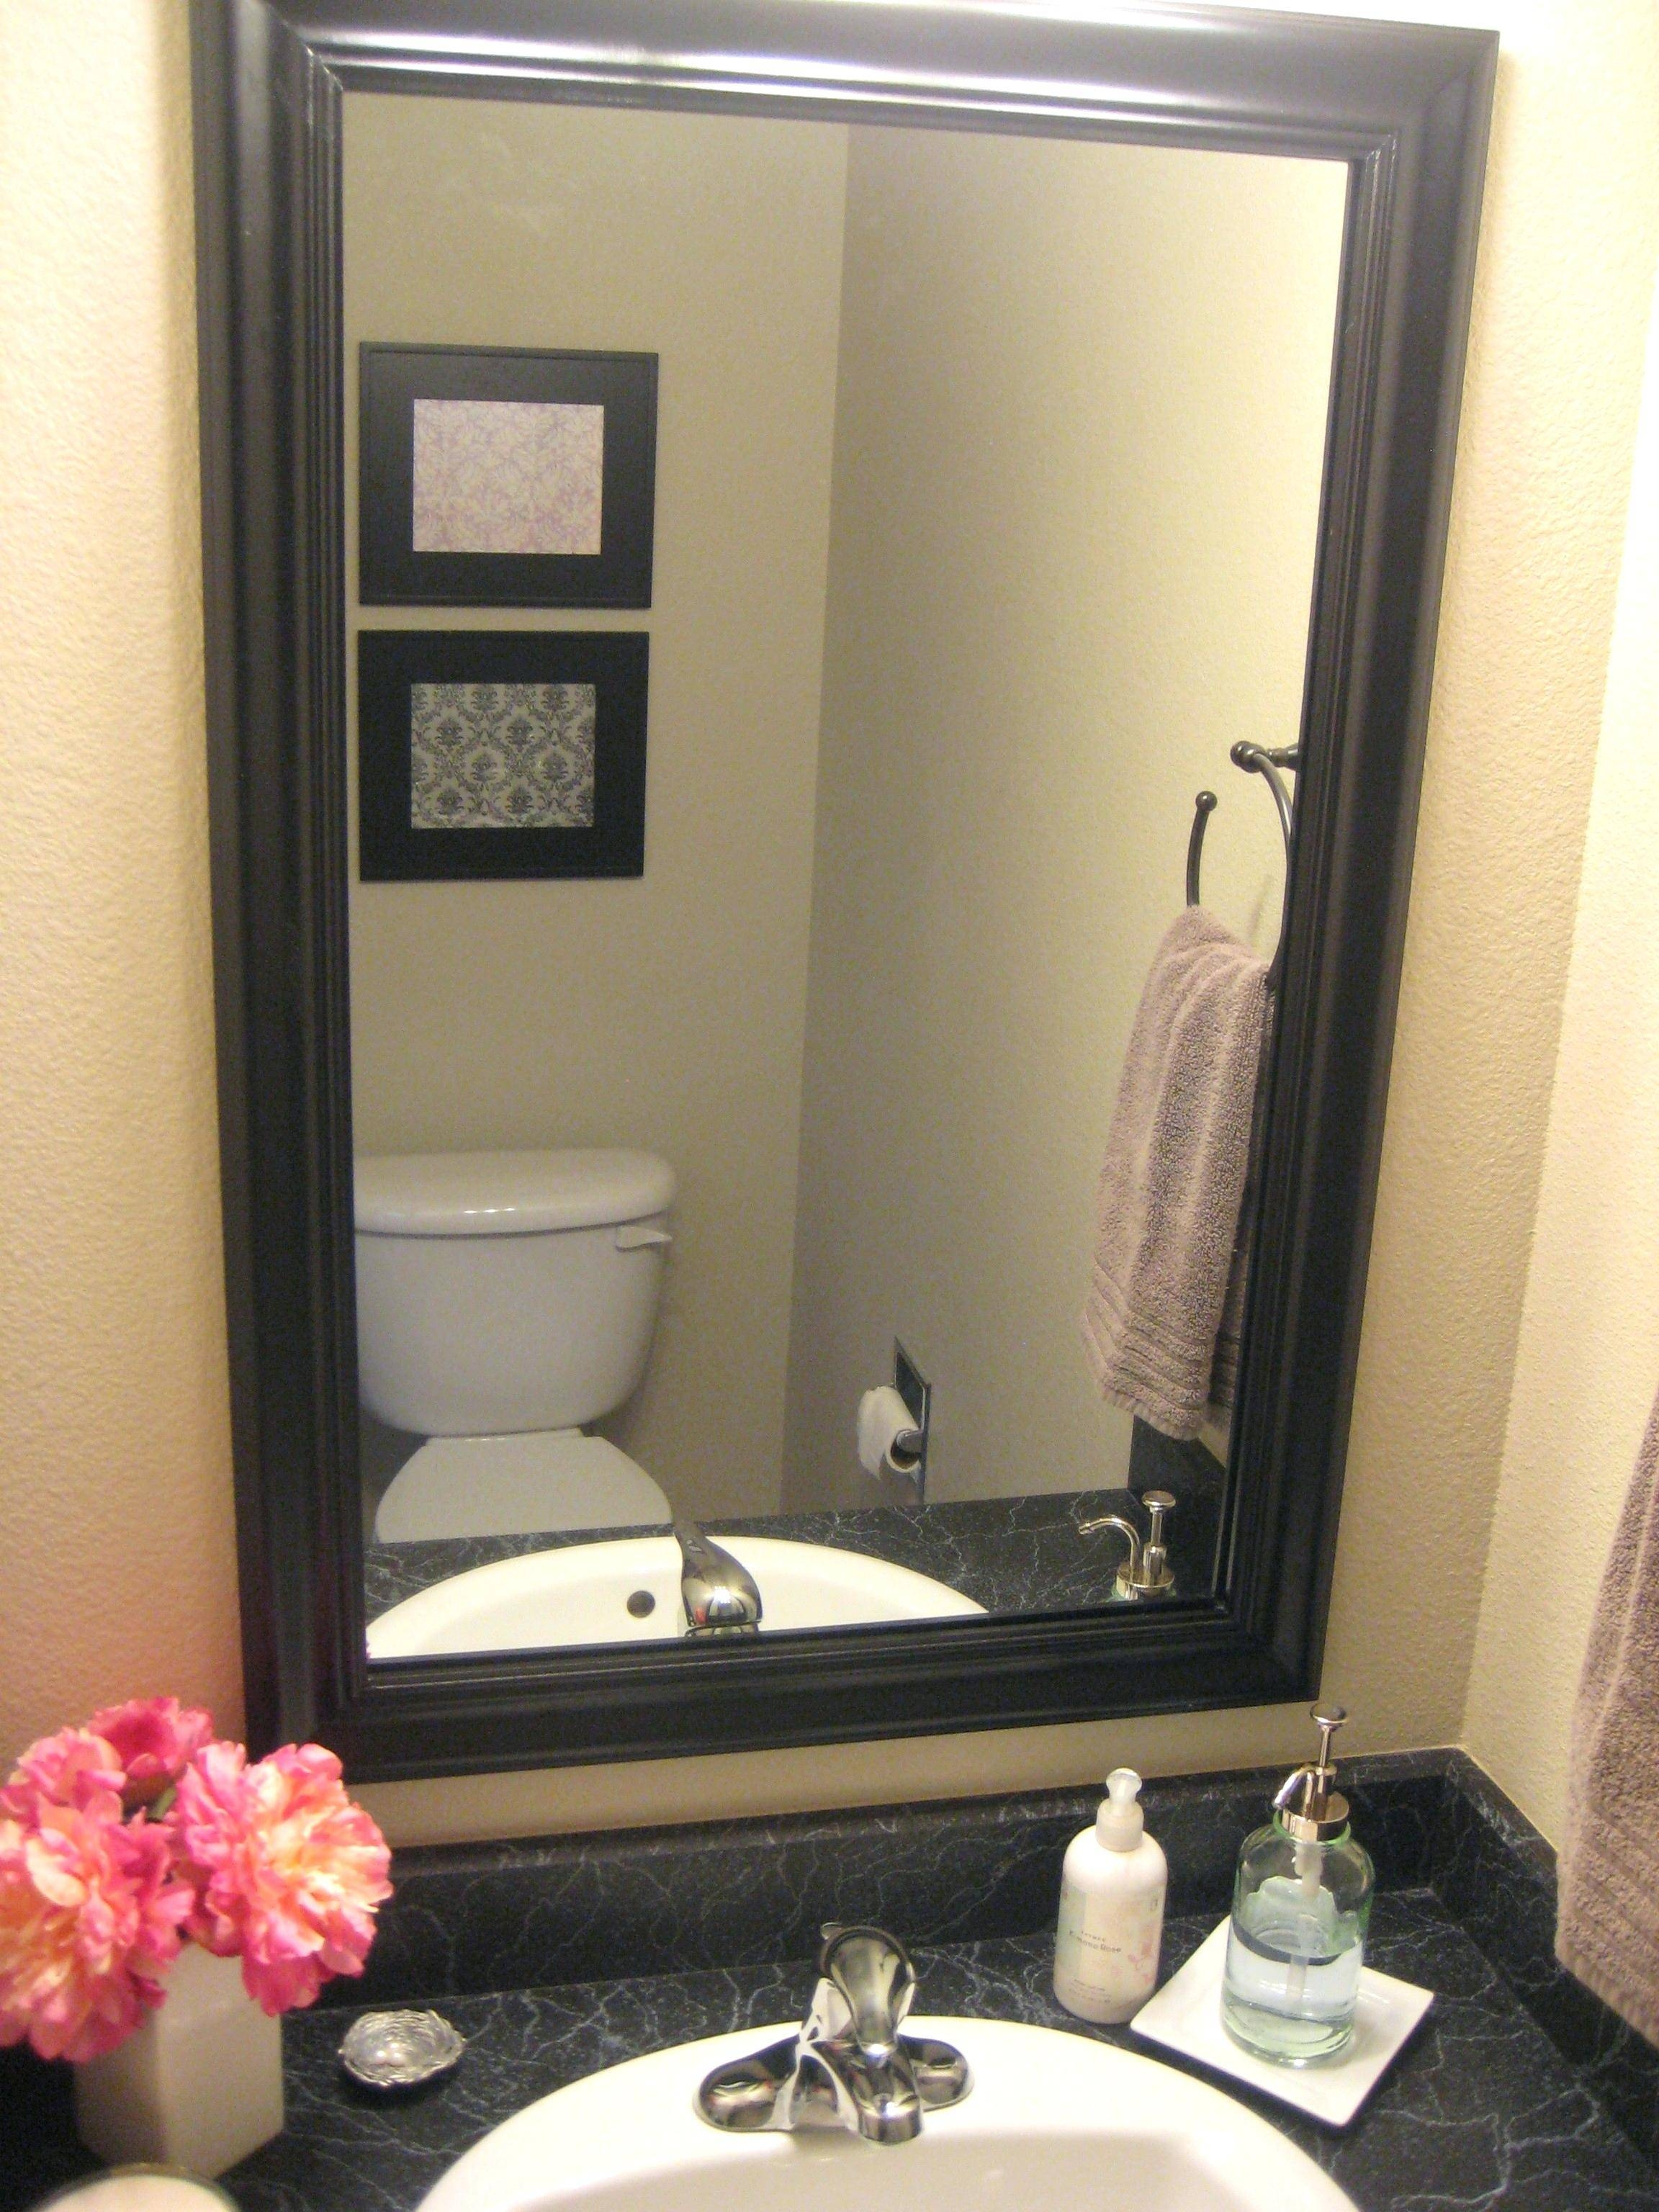 Bathroom Cabinets : Black Oval Mirror Mirrors For Sale Black with regard to Black Vintage Mirrors (Image 2 of 15)